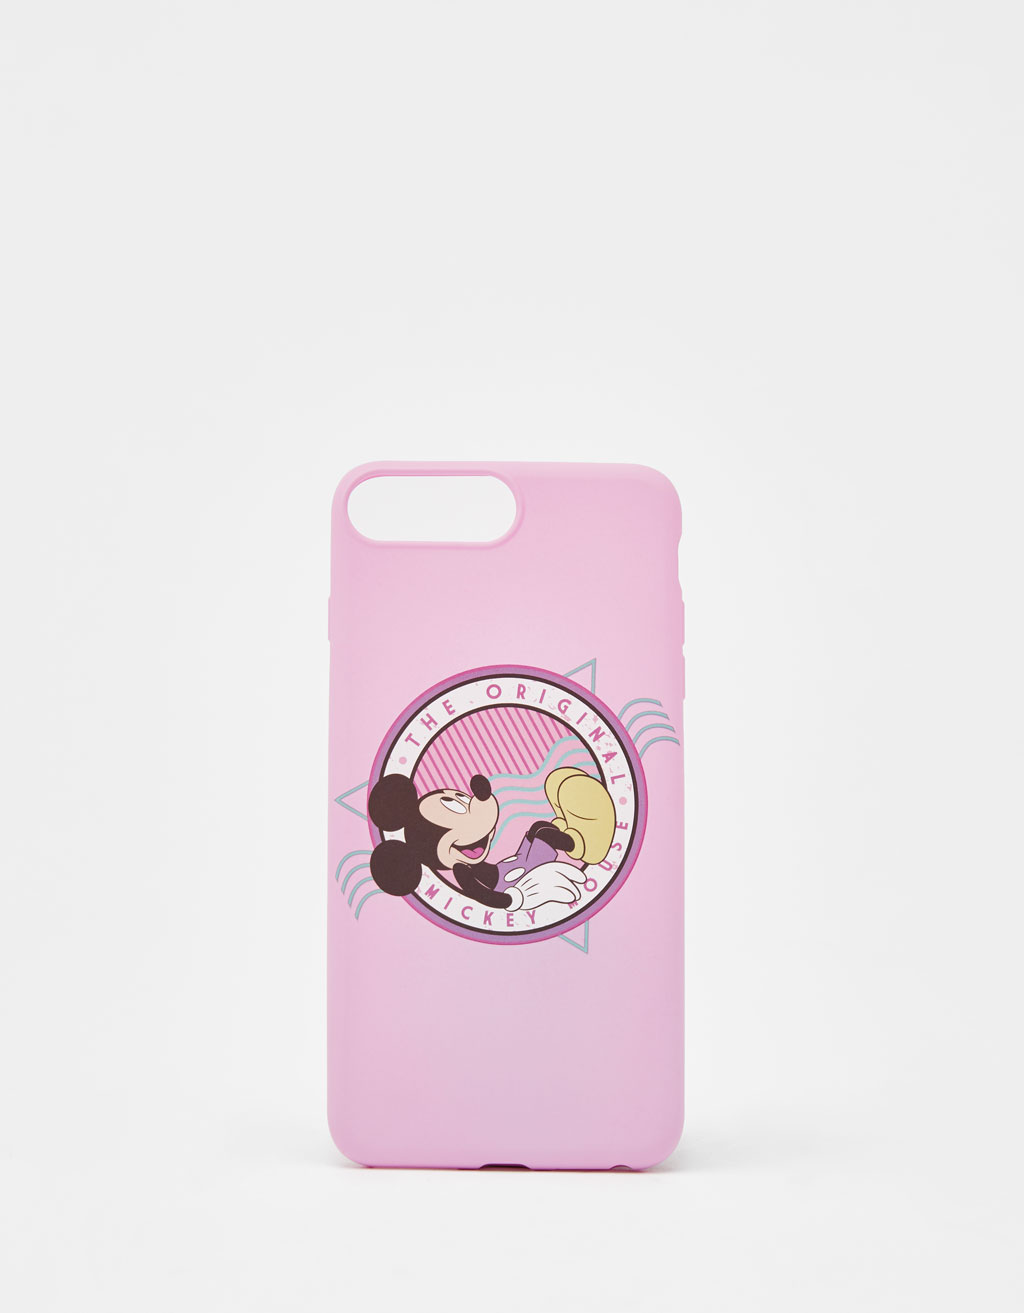 Handyhülle Mickey für iPhone 6 plus / 7 plus / 8 plus